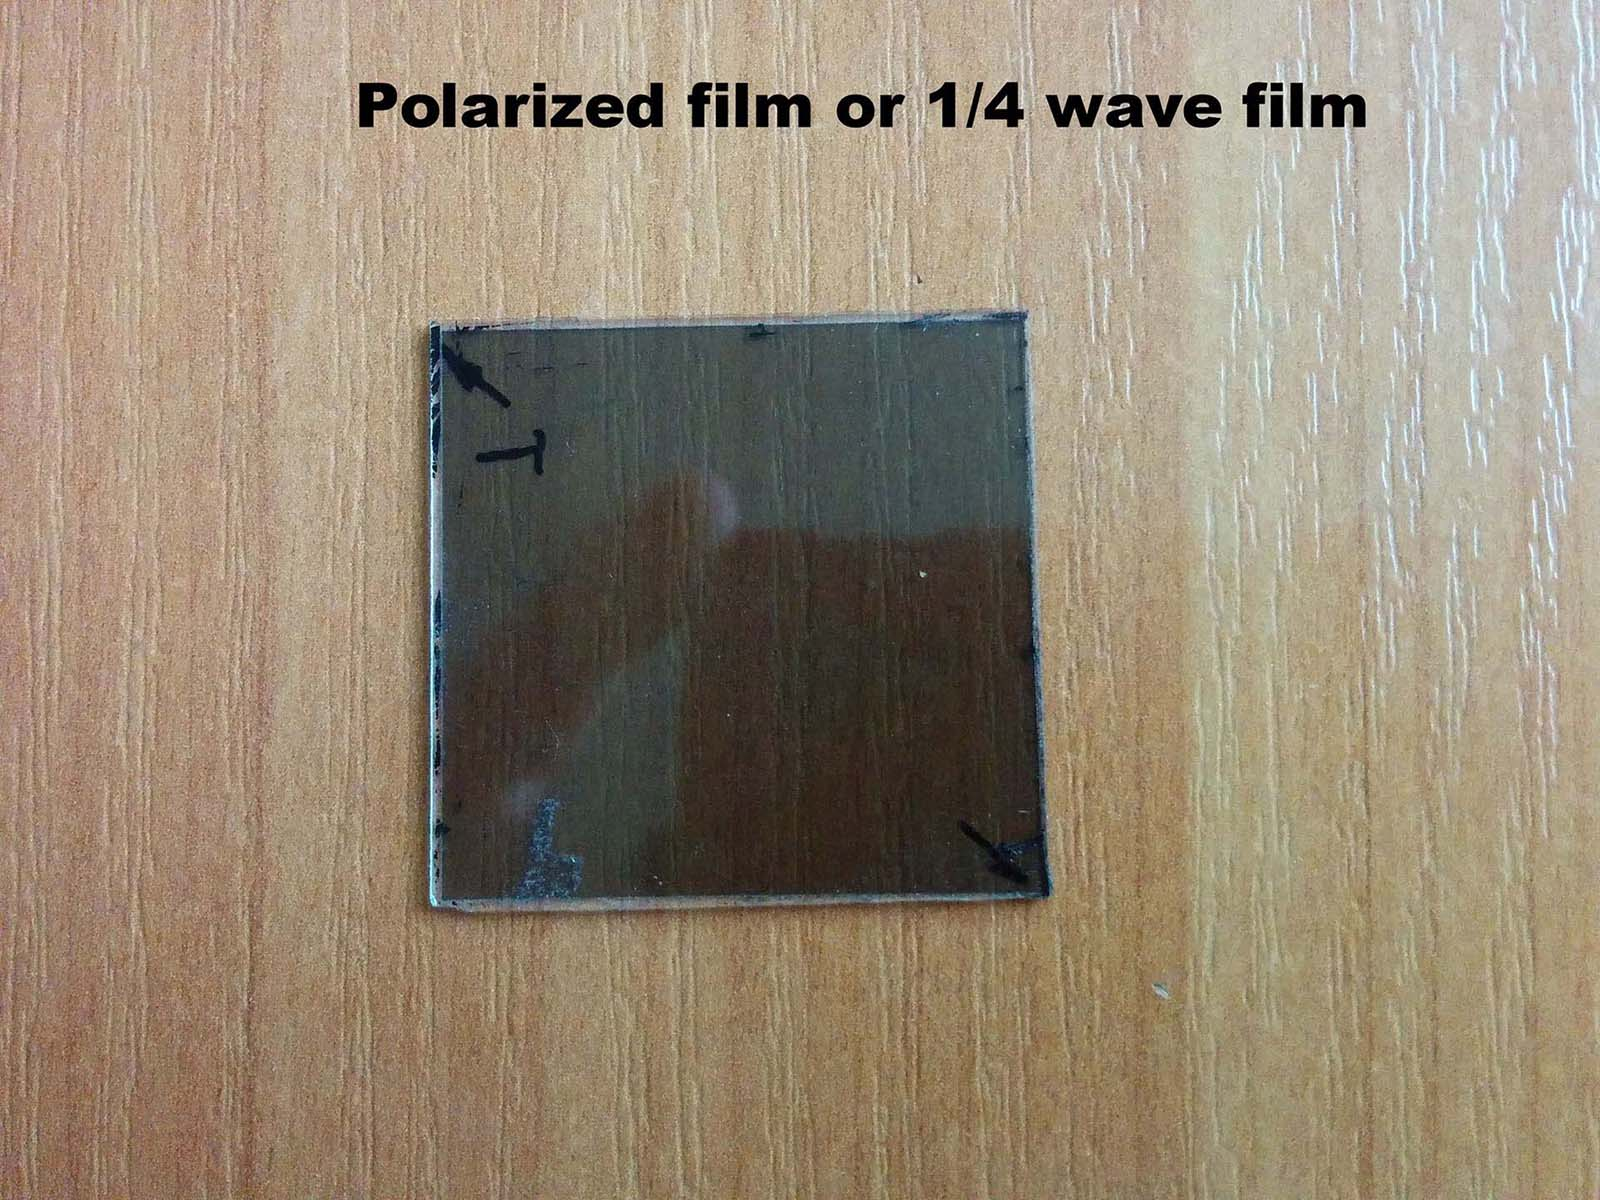 You could cut the polarizer off an old cell phone, lap top or LCD display